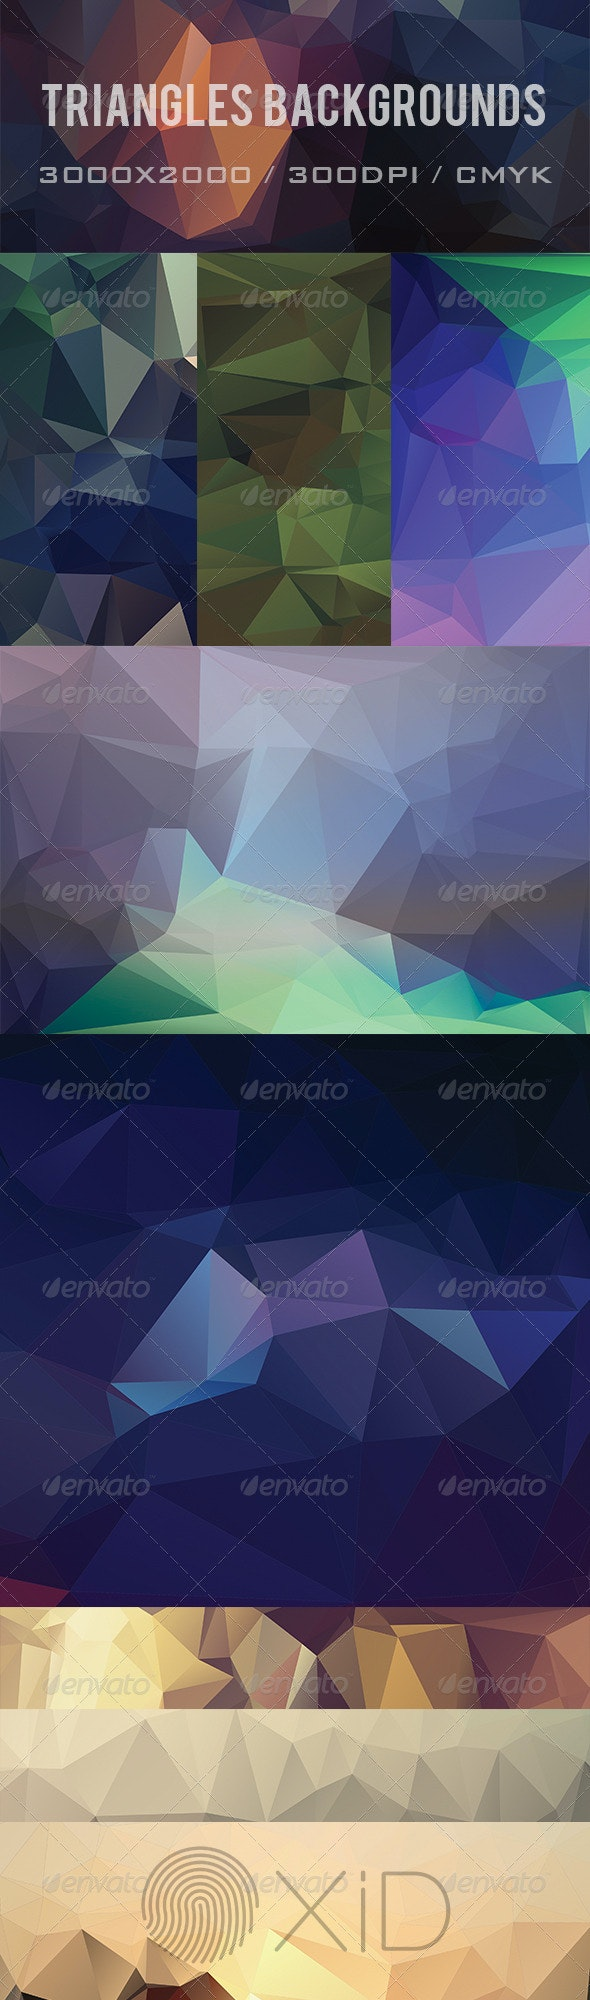 9 Triangles Background - Abstract Backgrounds